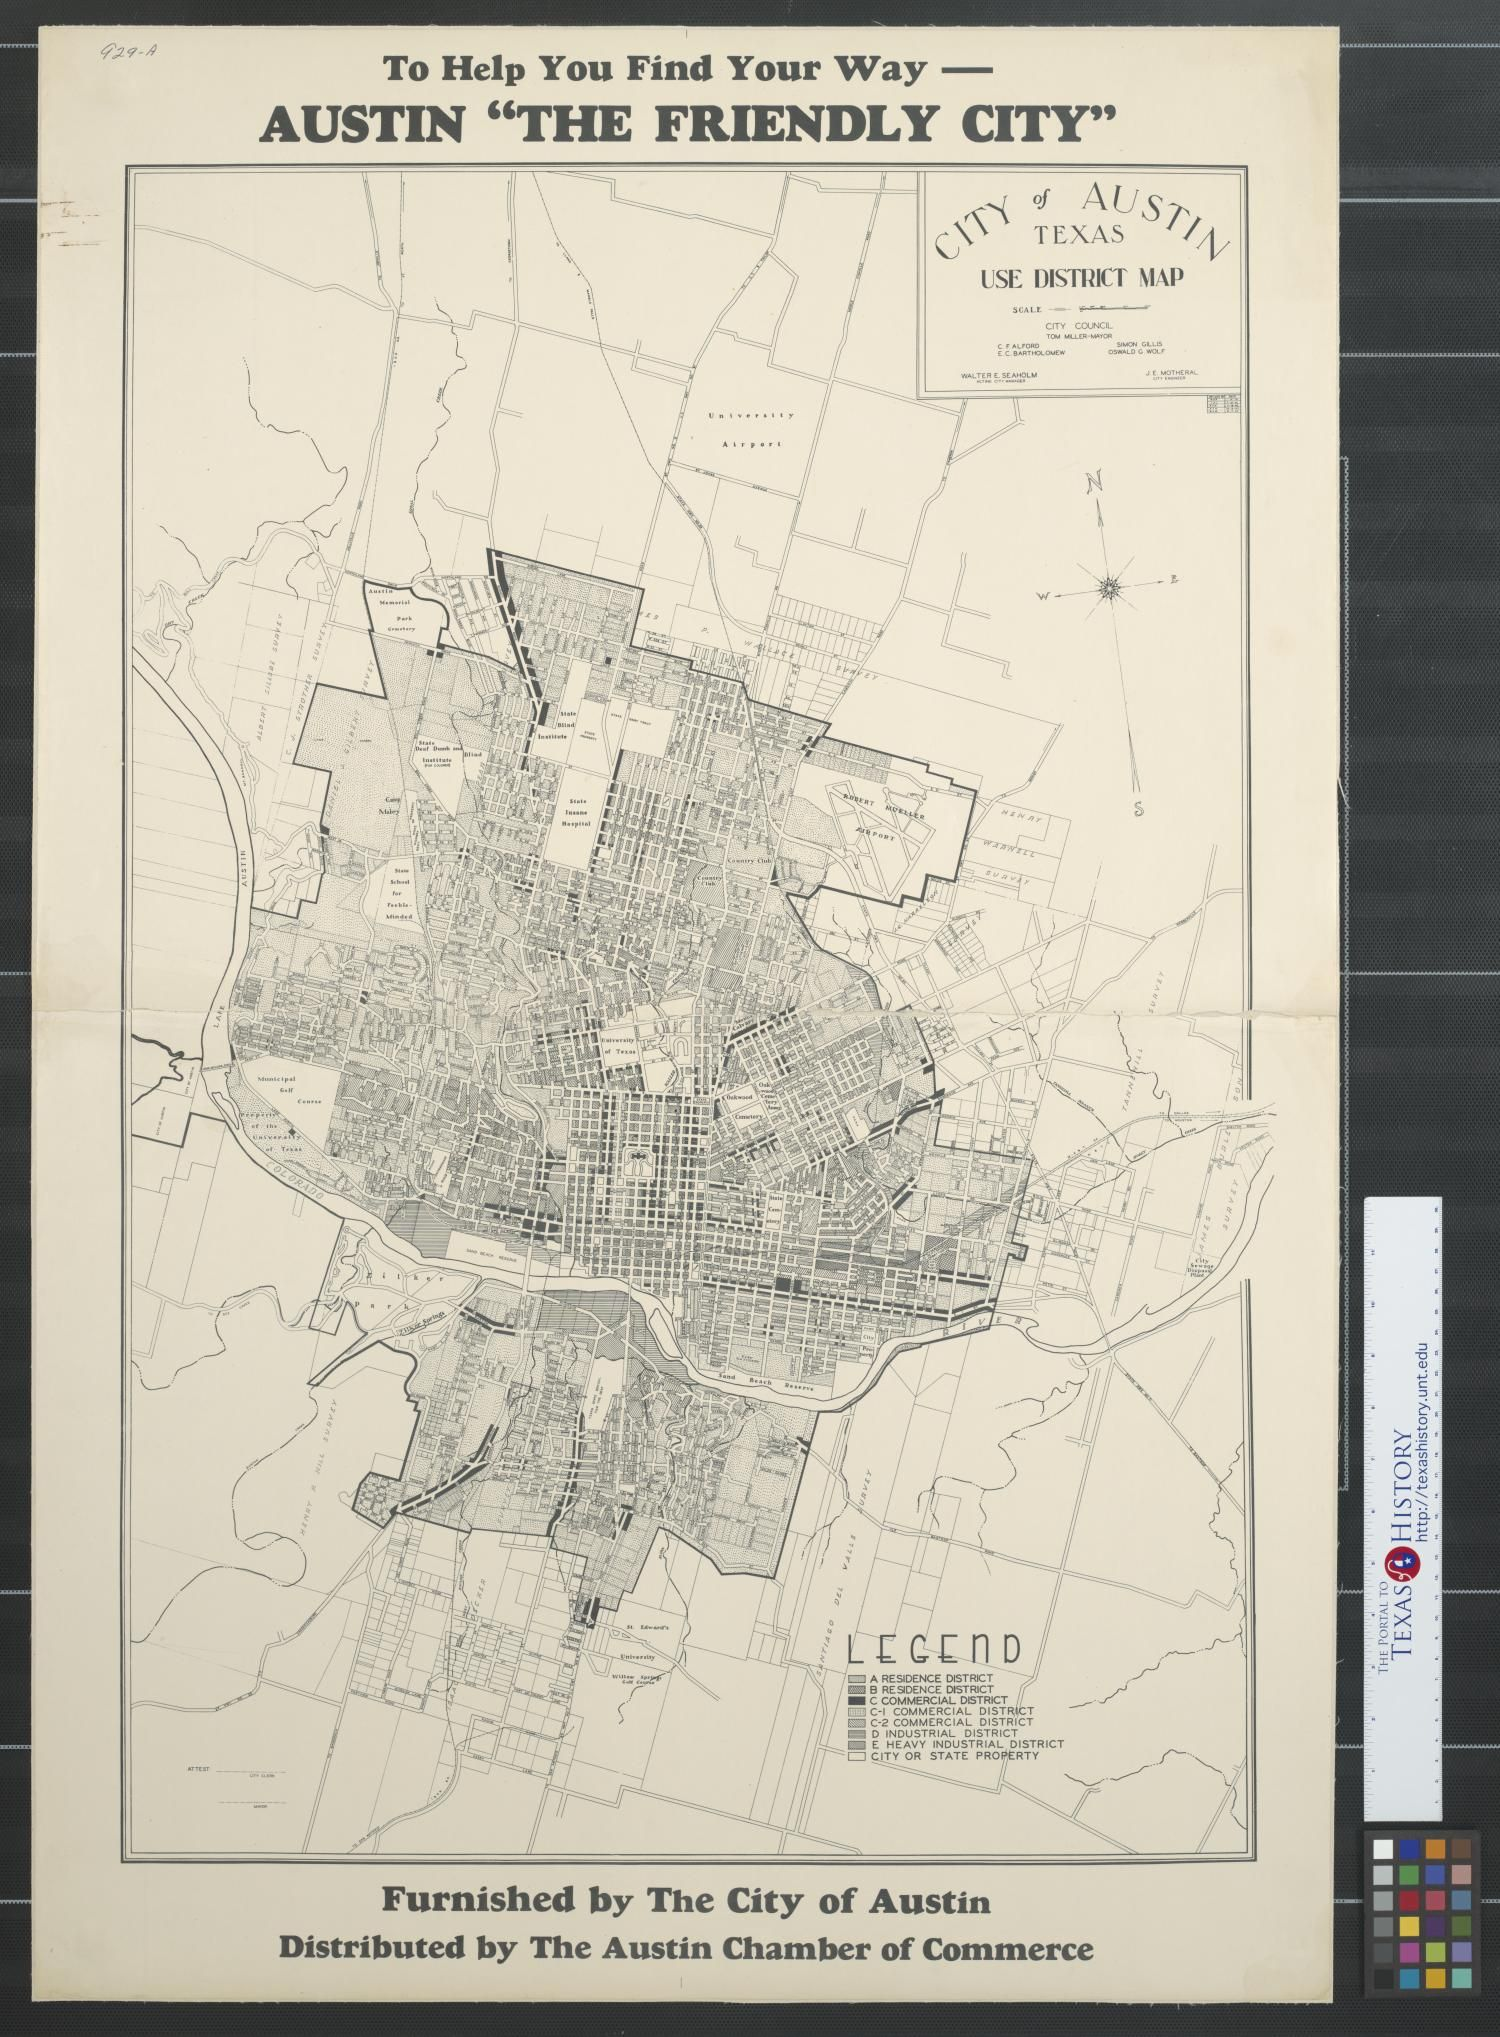 City Of Austin Texas Use District Map Map 1943 Austin Texas Map Texas Austin